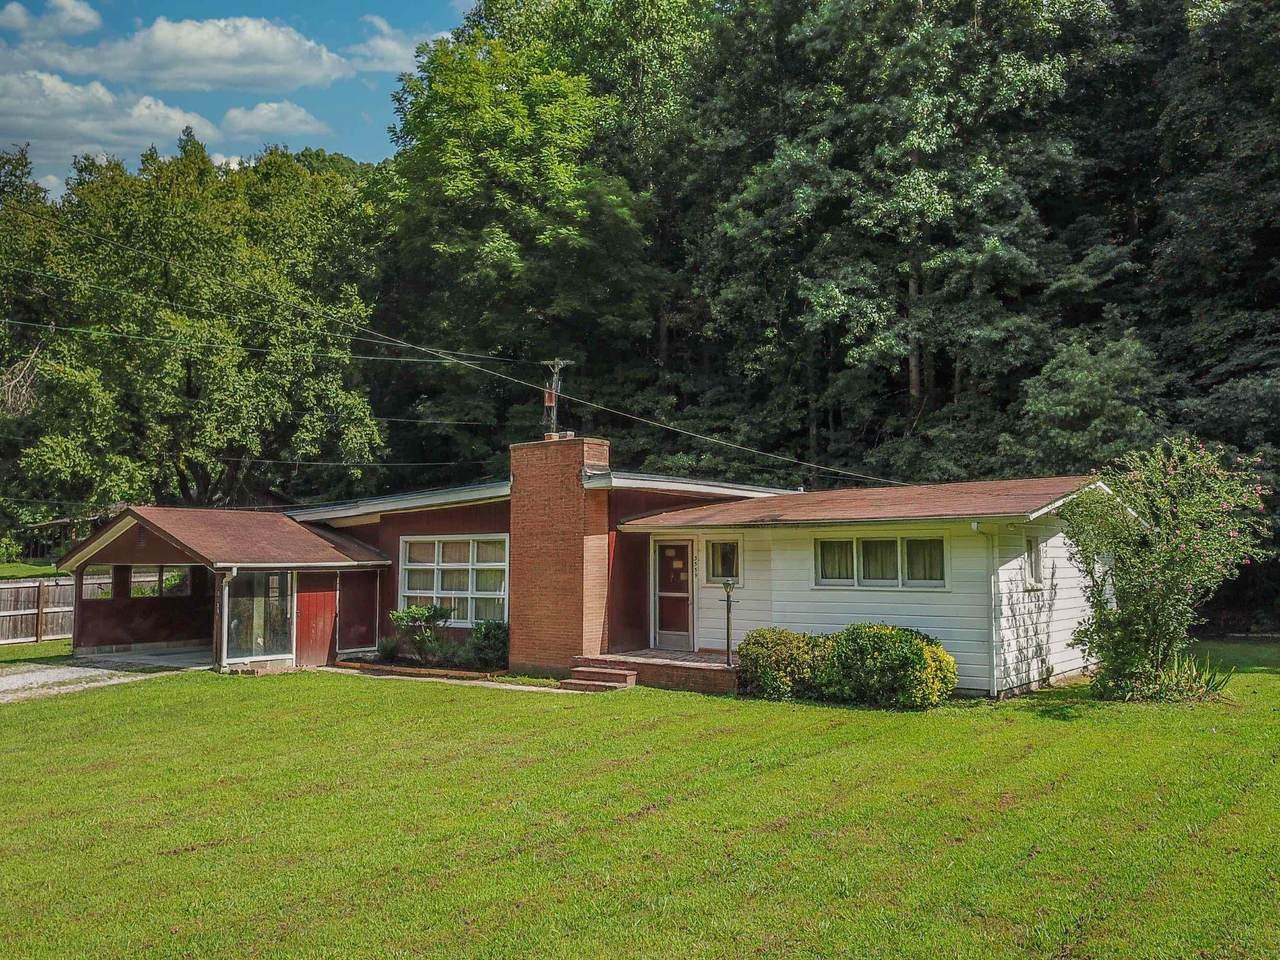 3559 Bear Hollow Rd - Photo 1